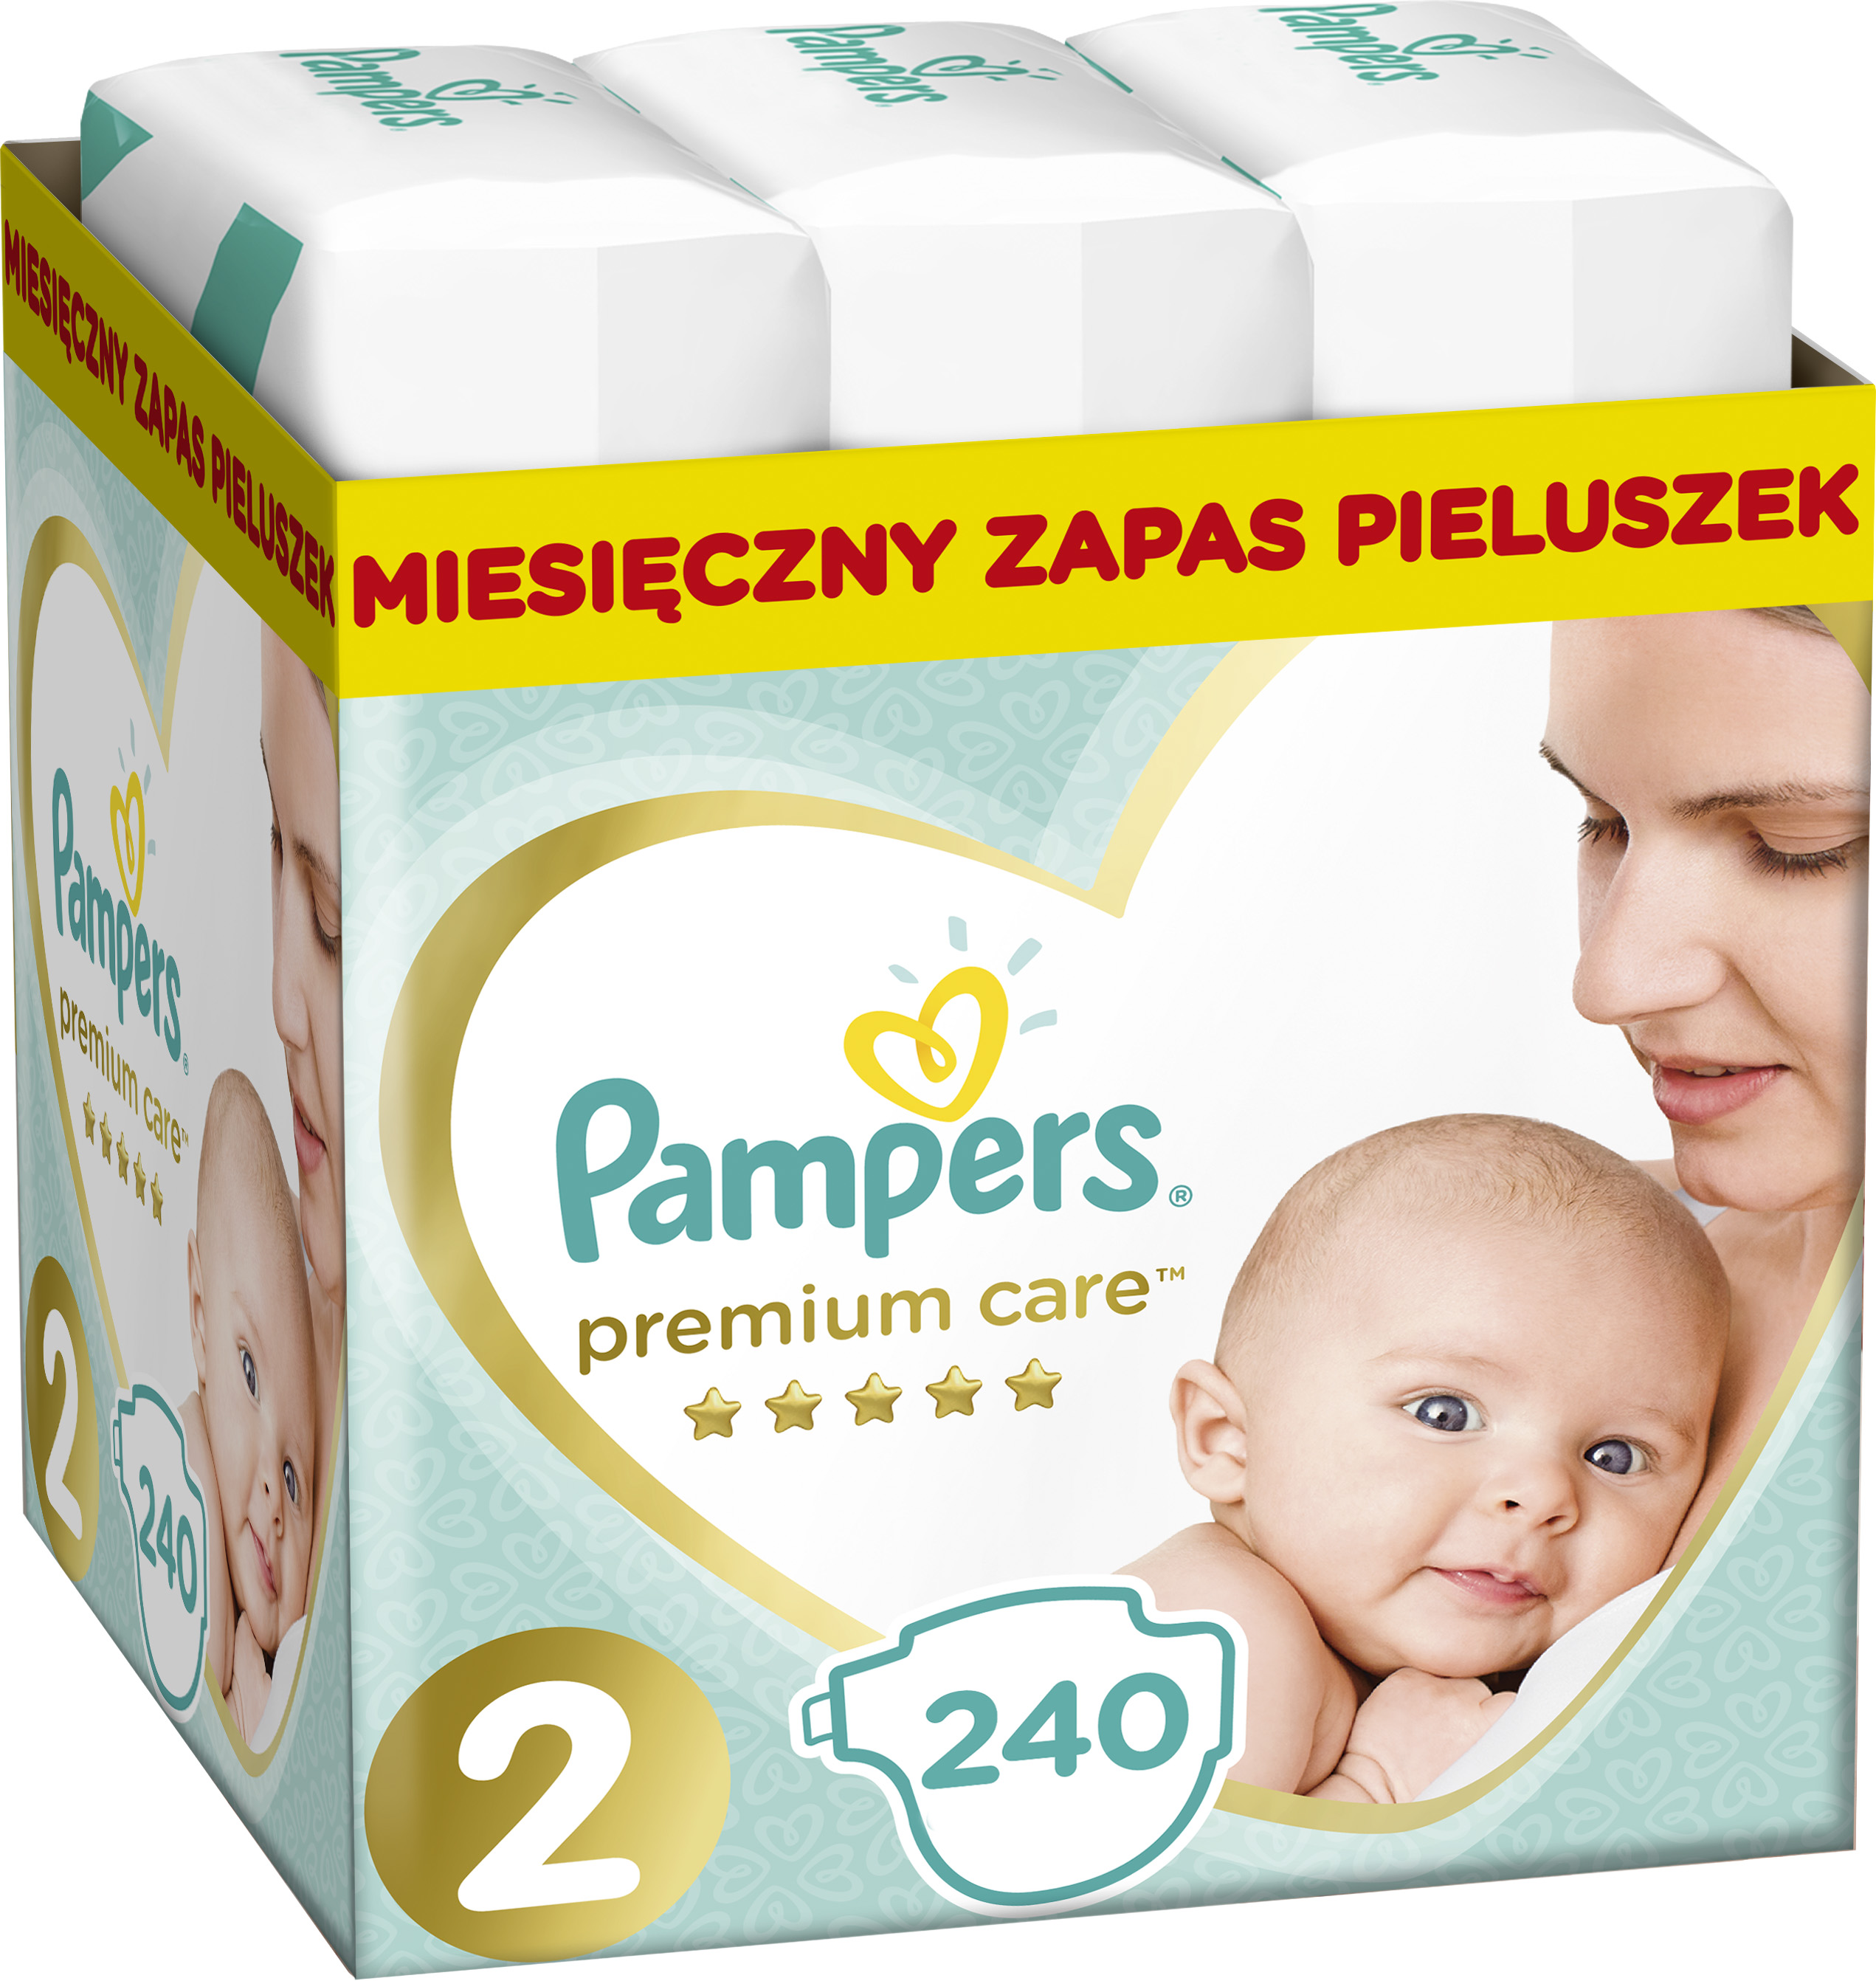 08001090379474_81689717_PRODUCTIMAGE_INPACKAGE_FRONT_CENTER_2_Pampers.jpg